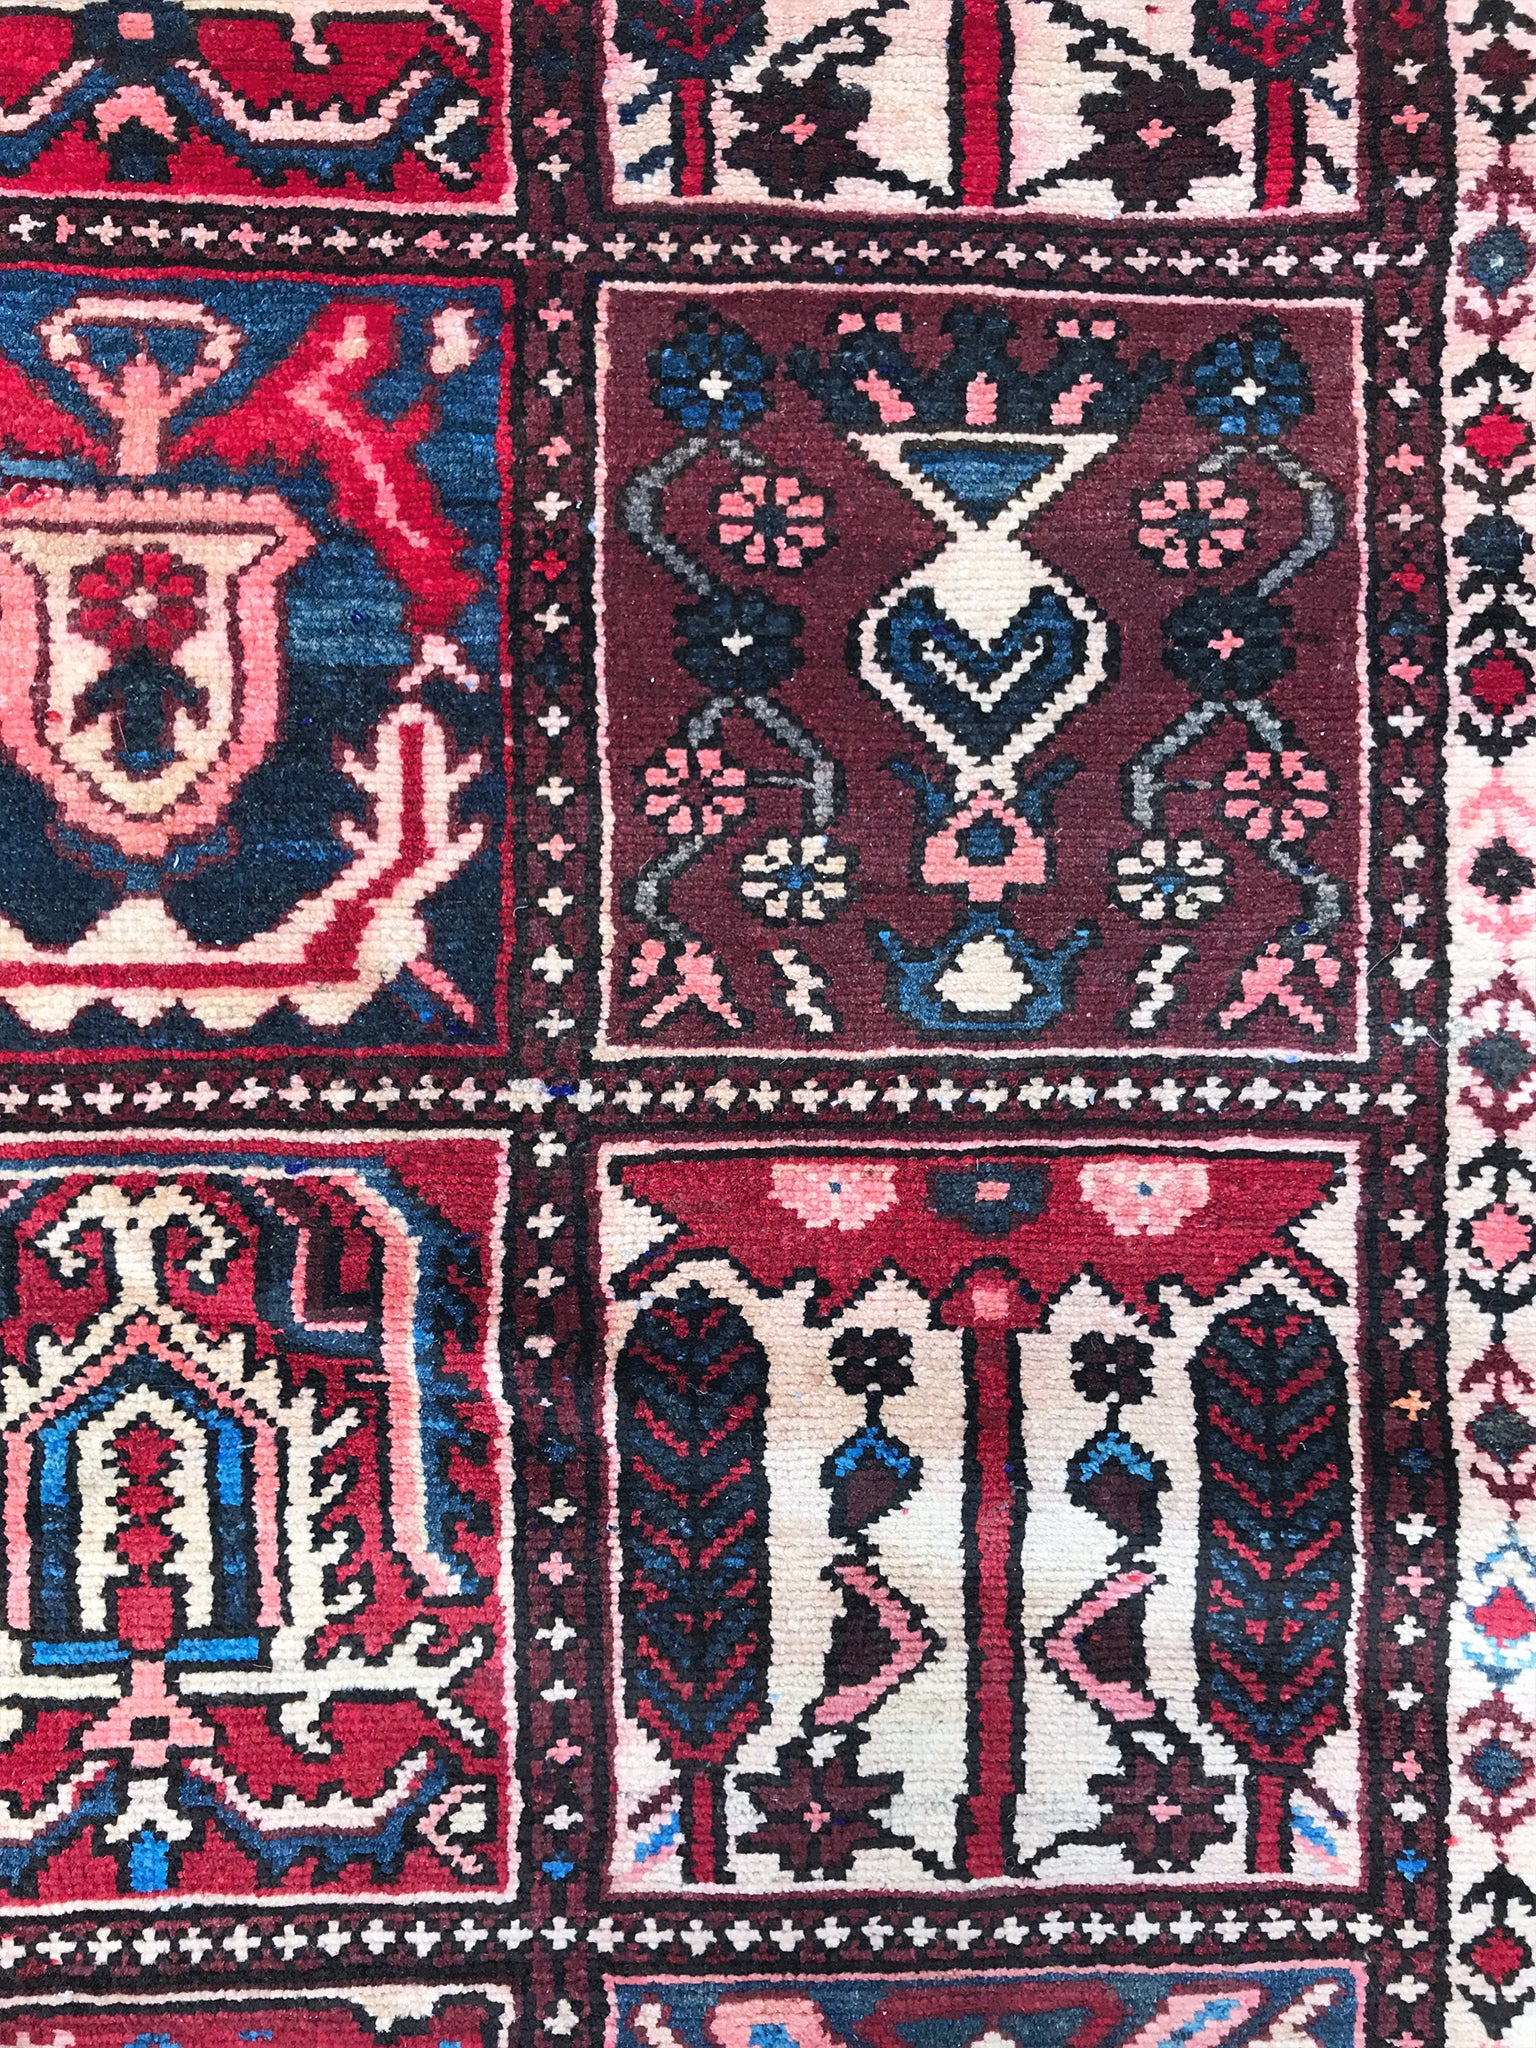 Early 20th Century Antique Persian Rug 3 11 X 6 9